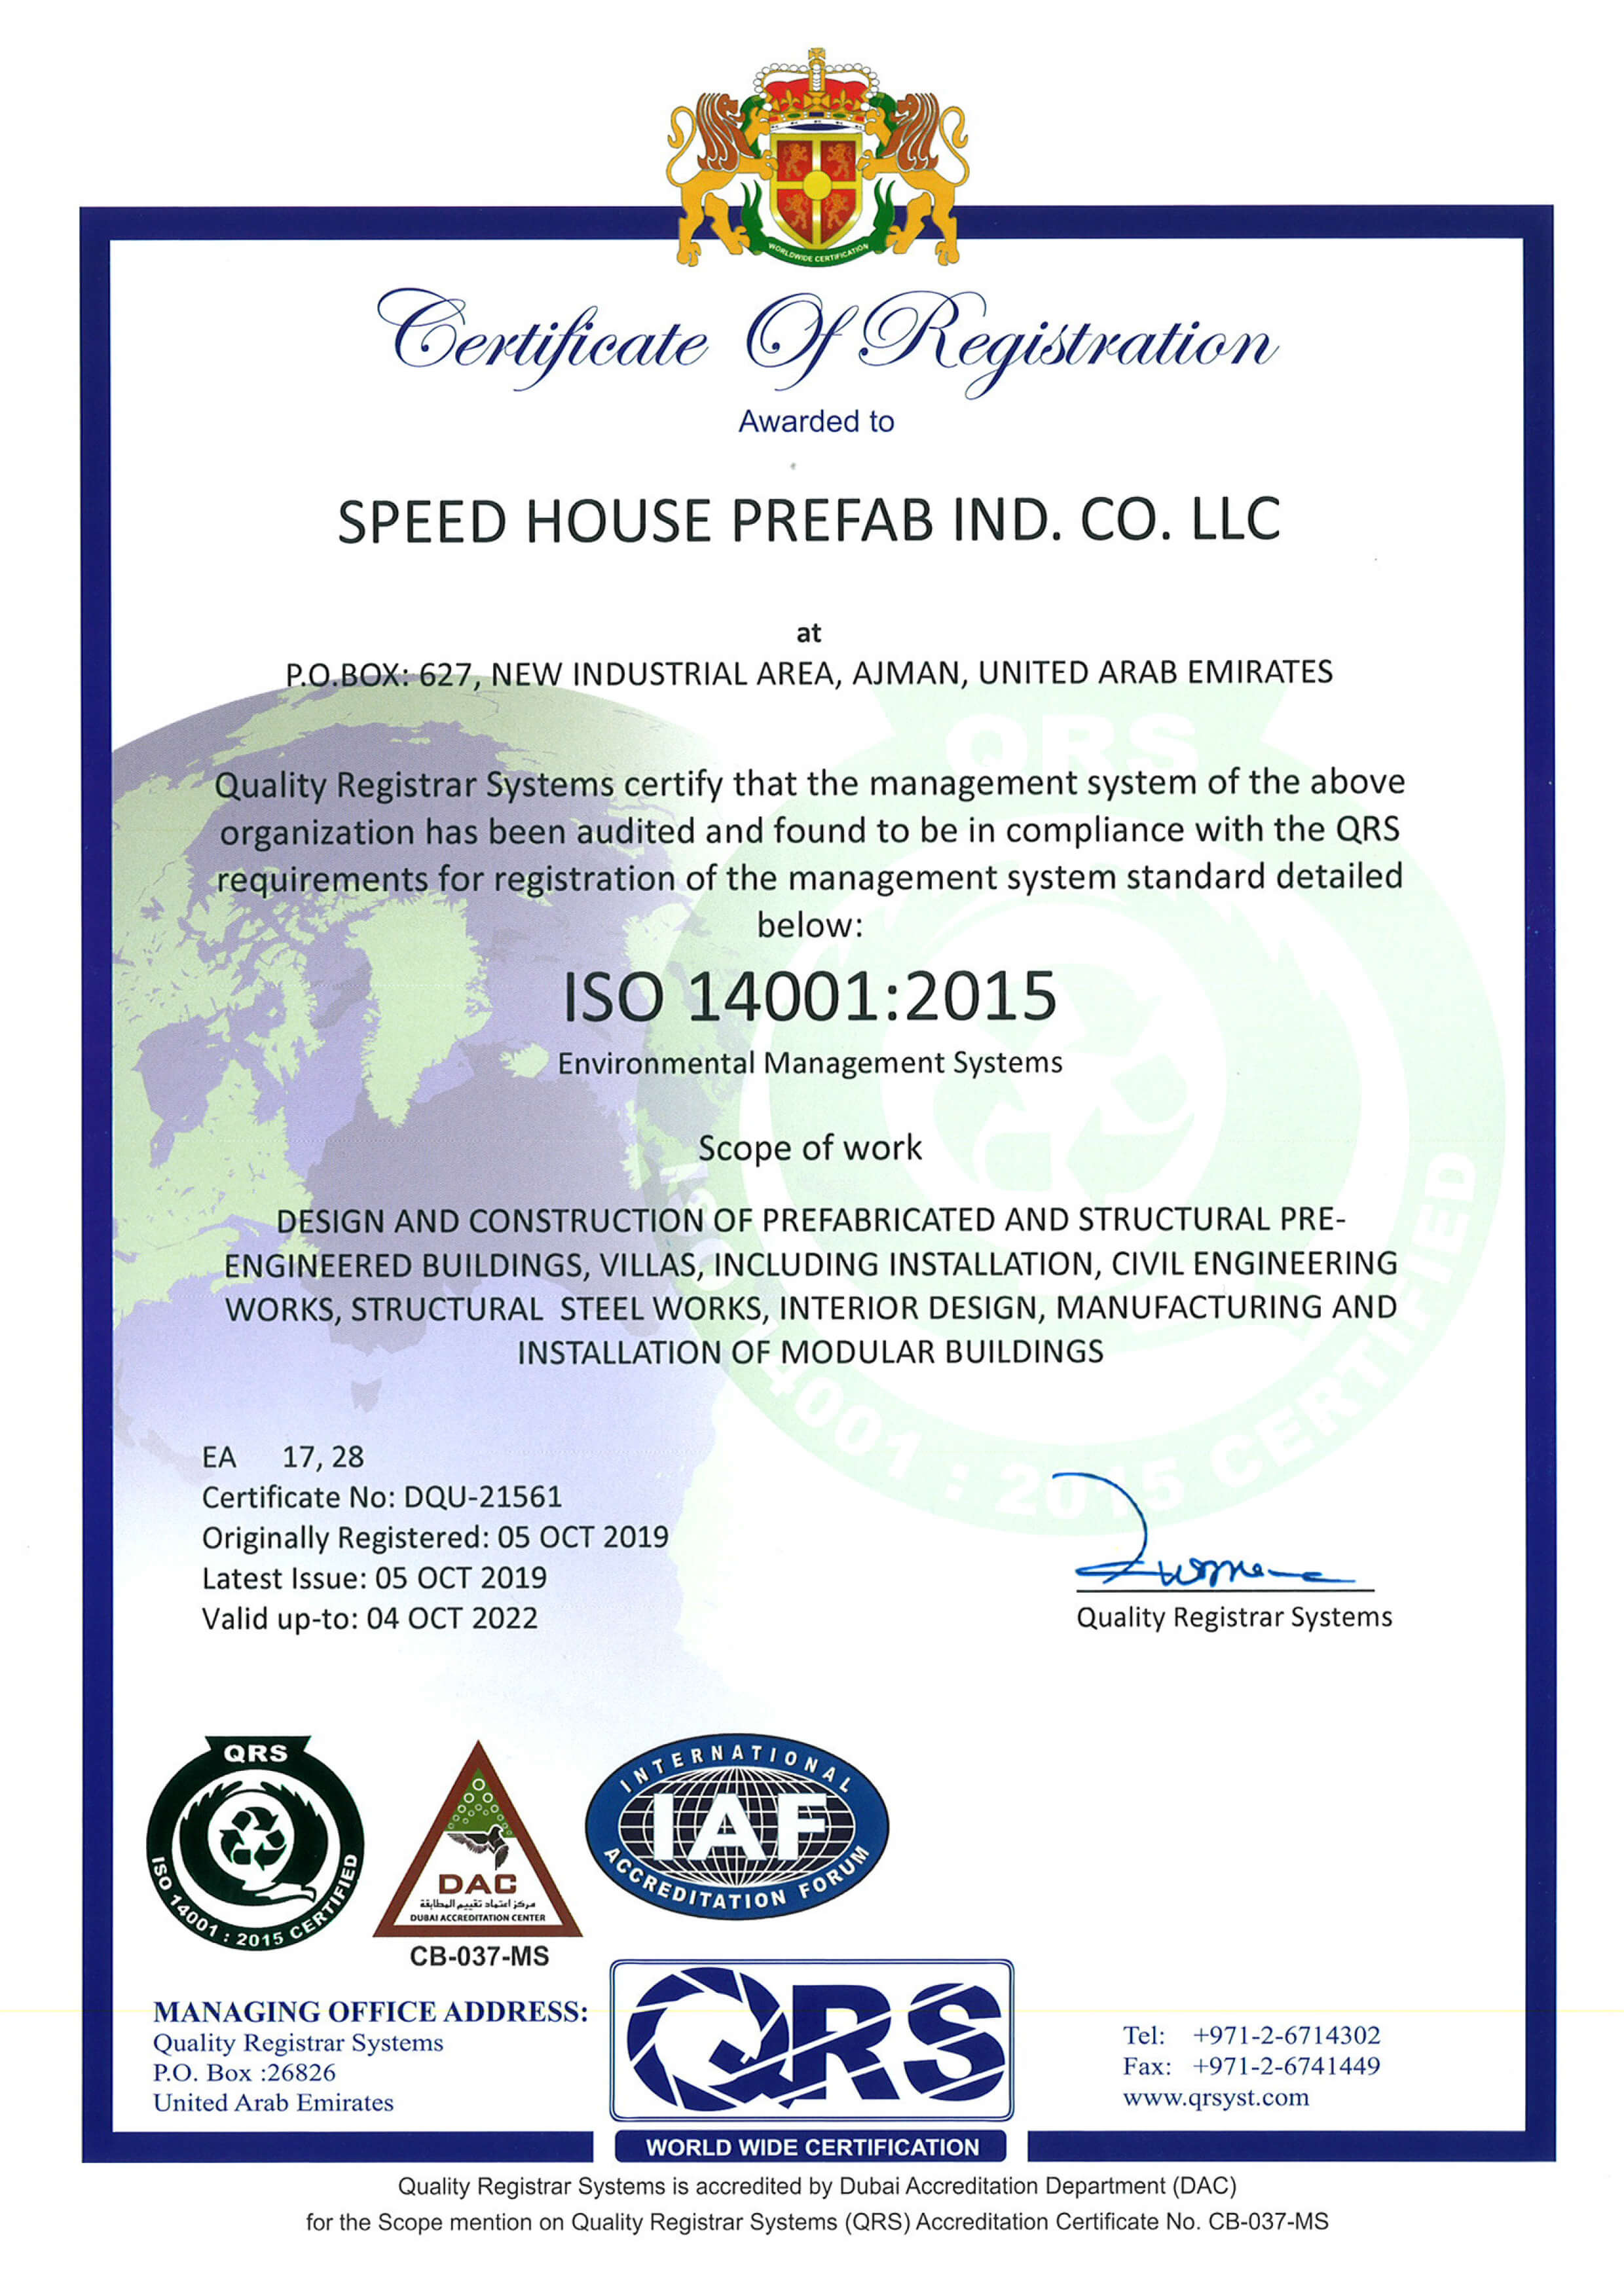 Speed House Group Prefab ISO 14001 Certificate